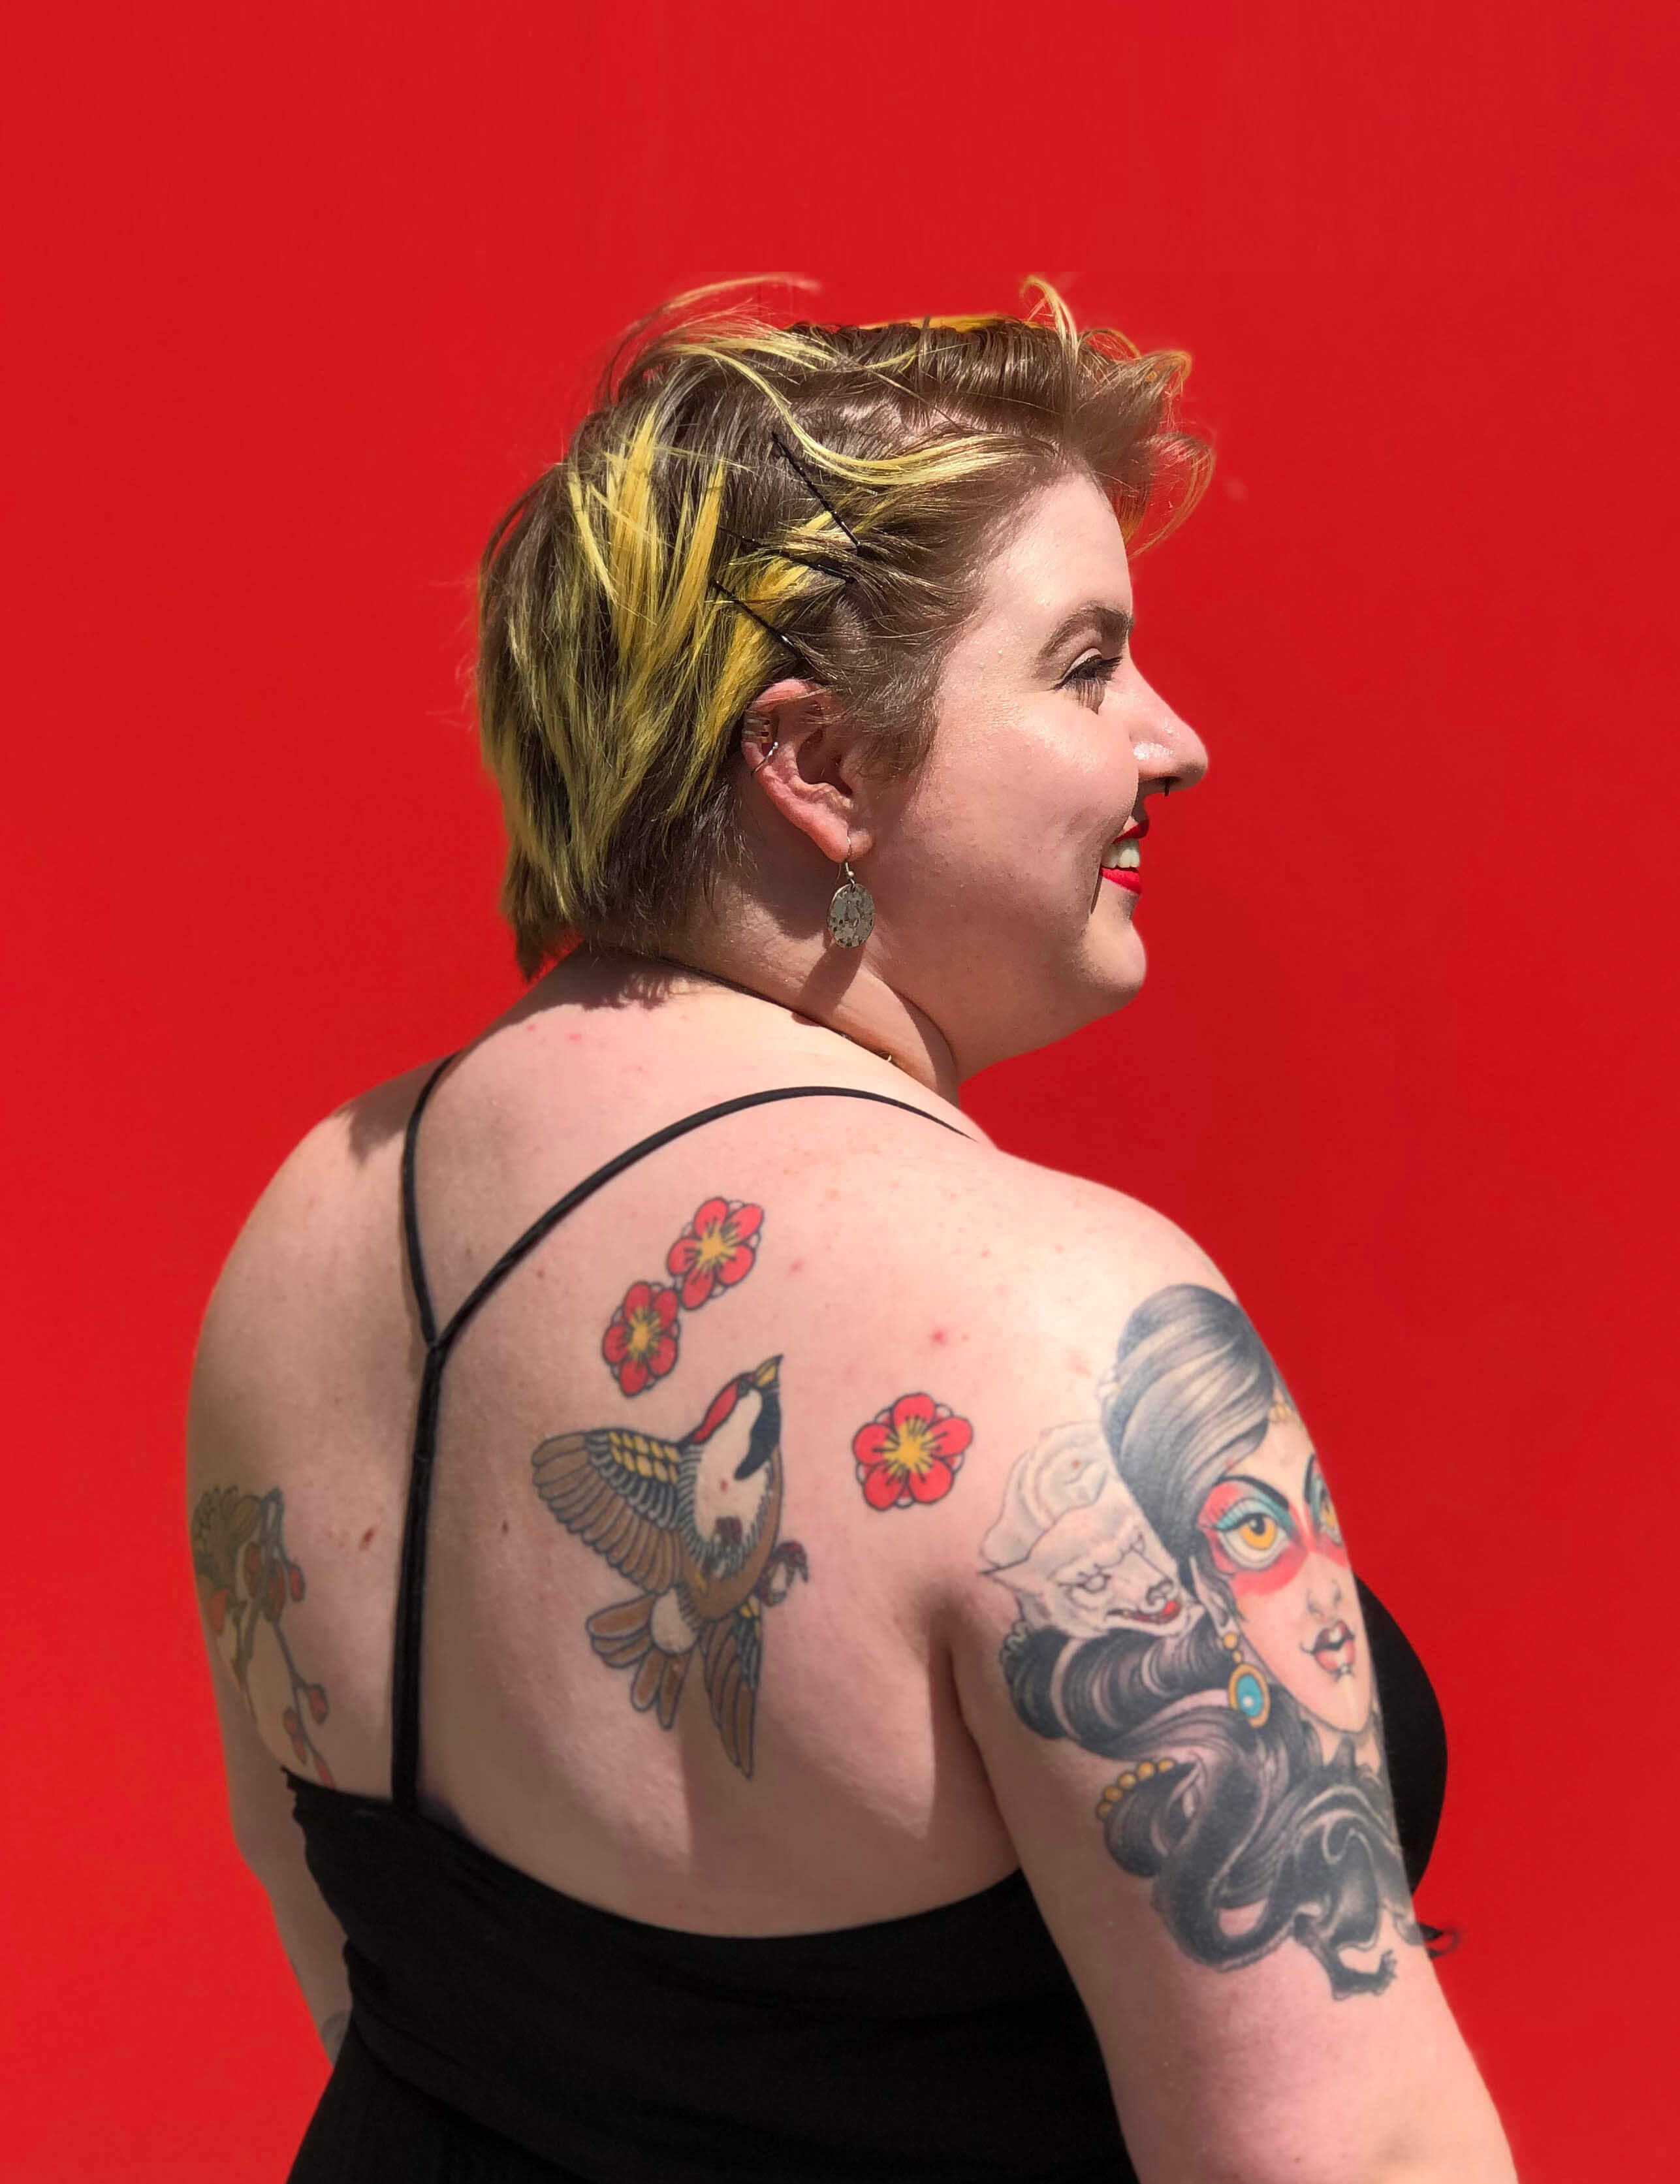 nikki bosso showing off tattoos on her back in front of red wall